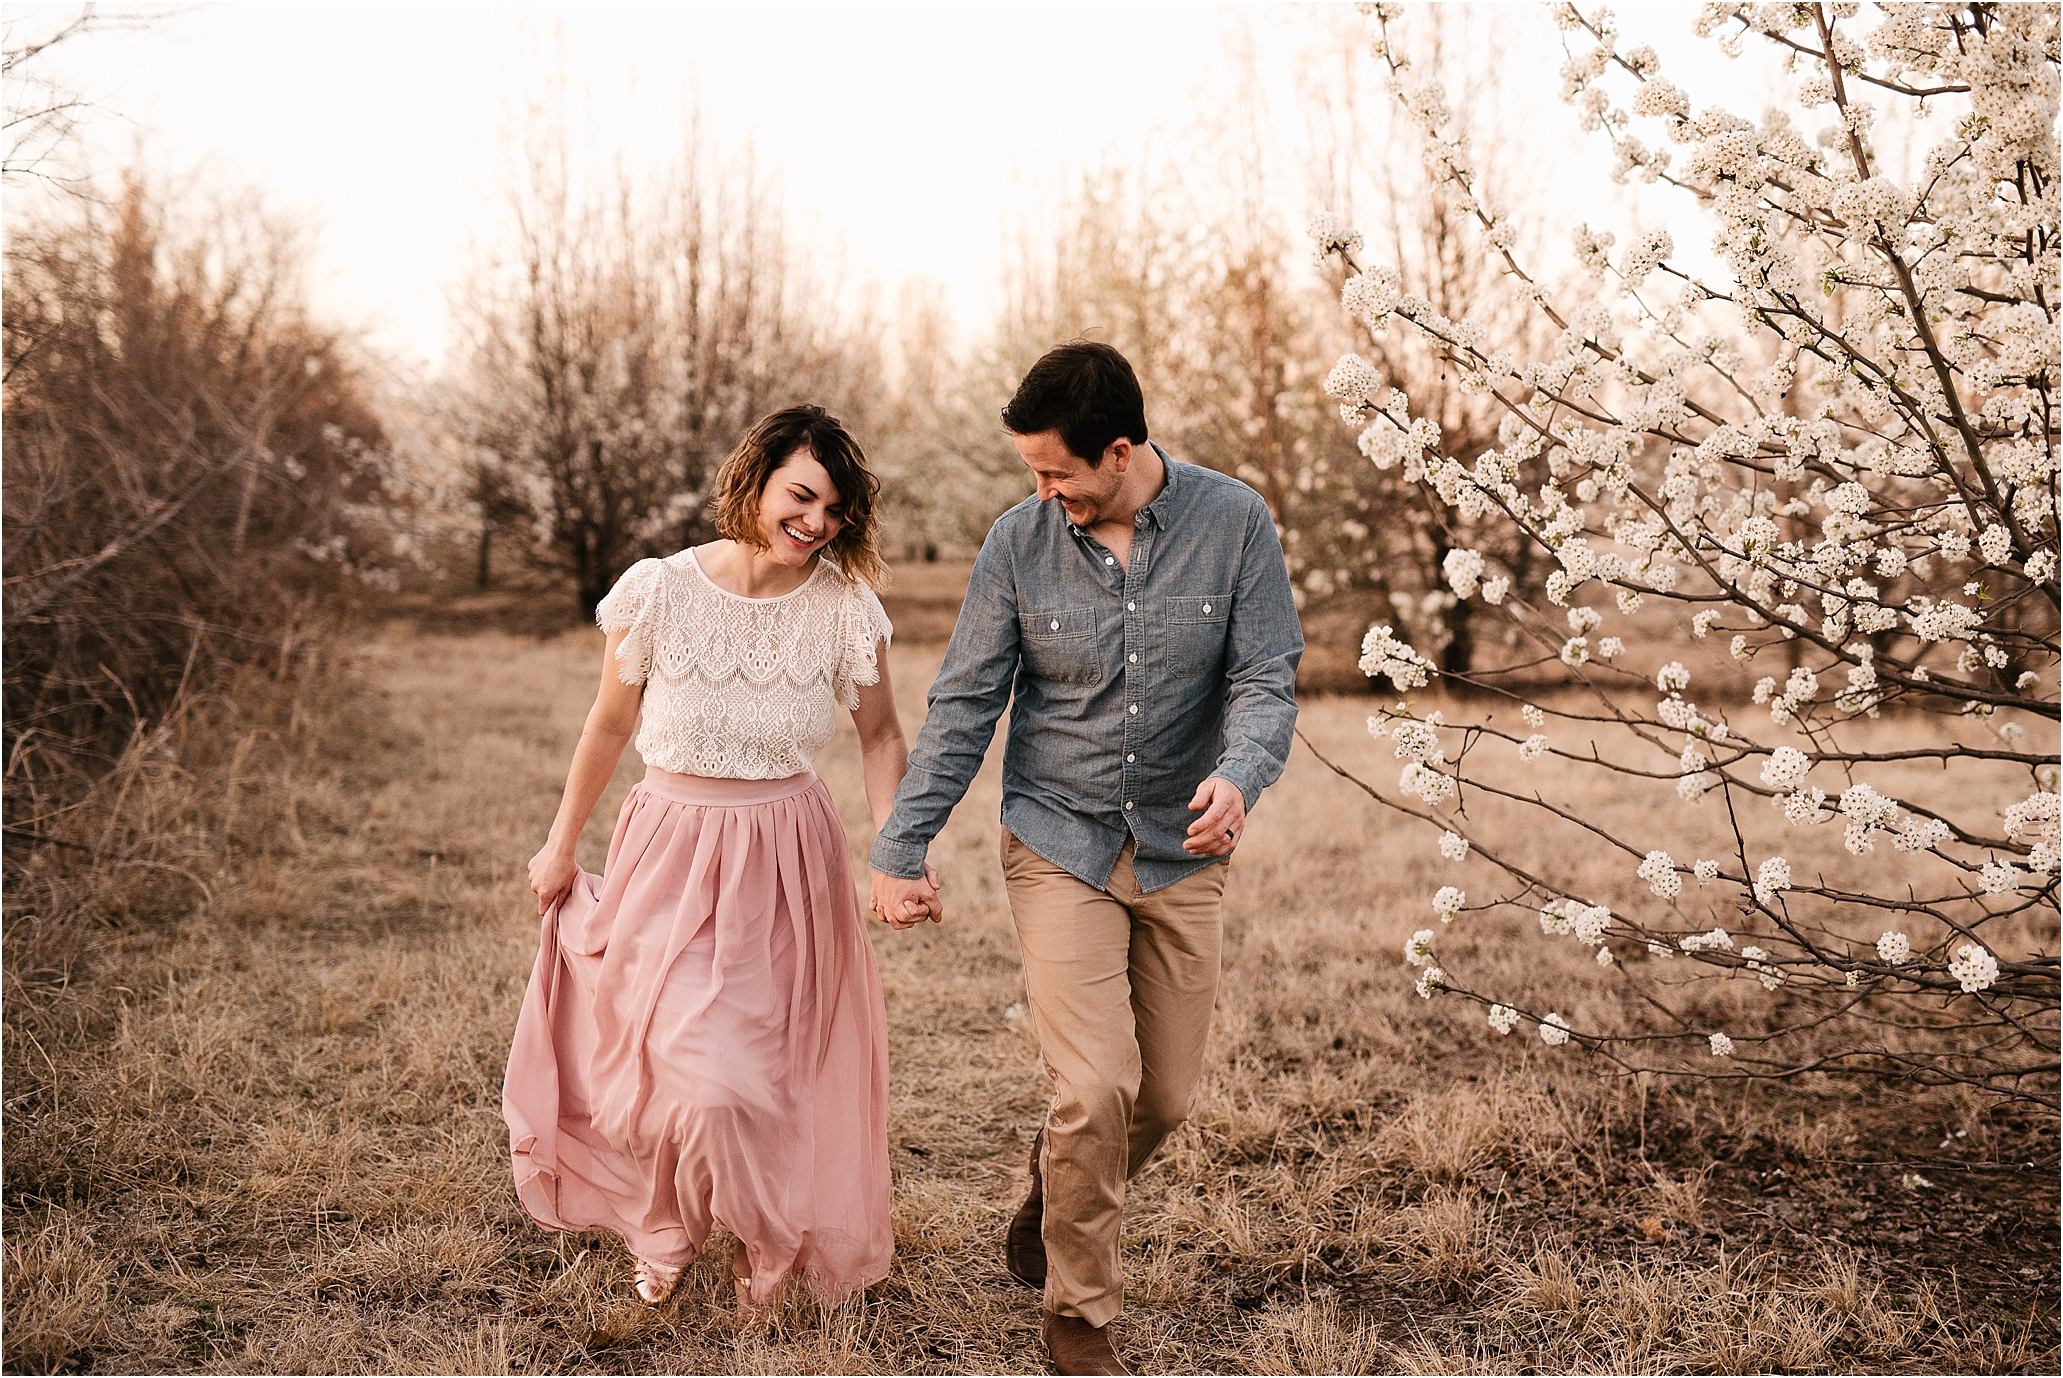 engagement photos session oklahoma wedding photographer outdoors spring edmond okc anniversary what to wear natural white flowers